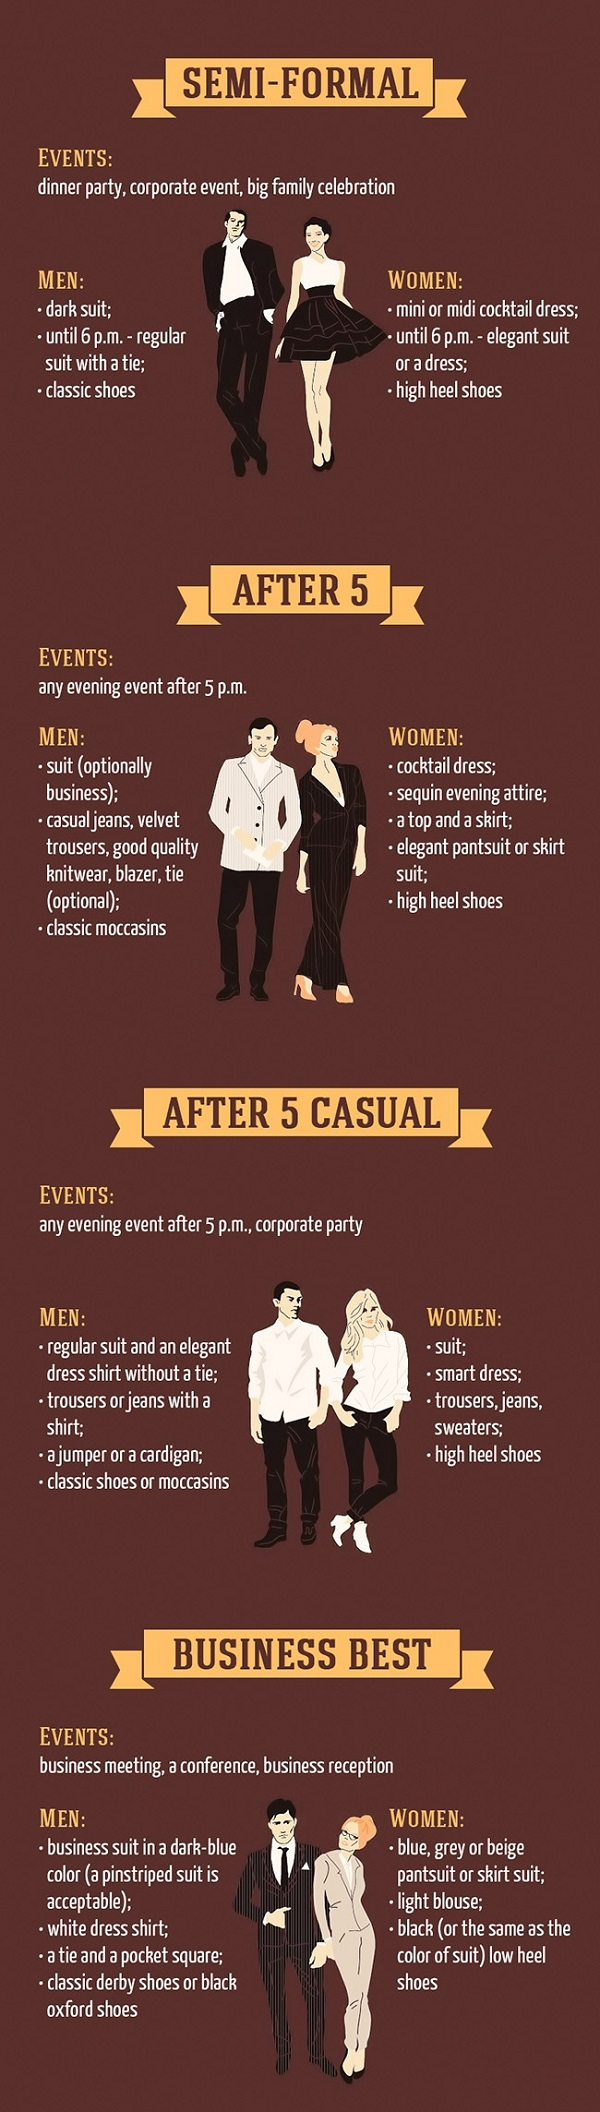 Infographic: Basic Dress Code Rules For Special Events ...